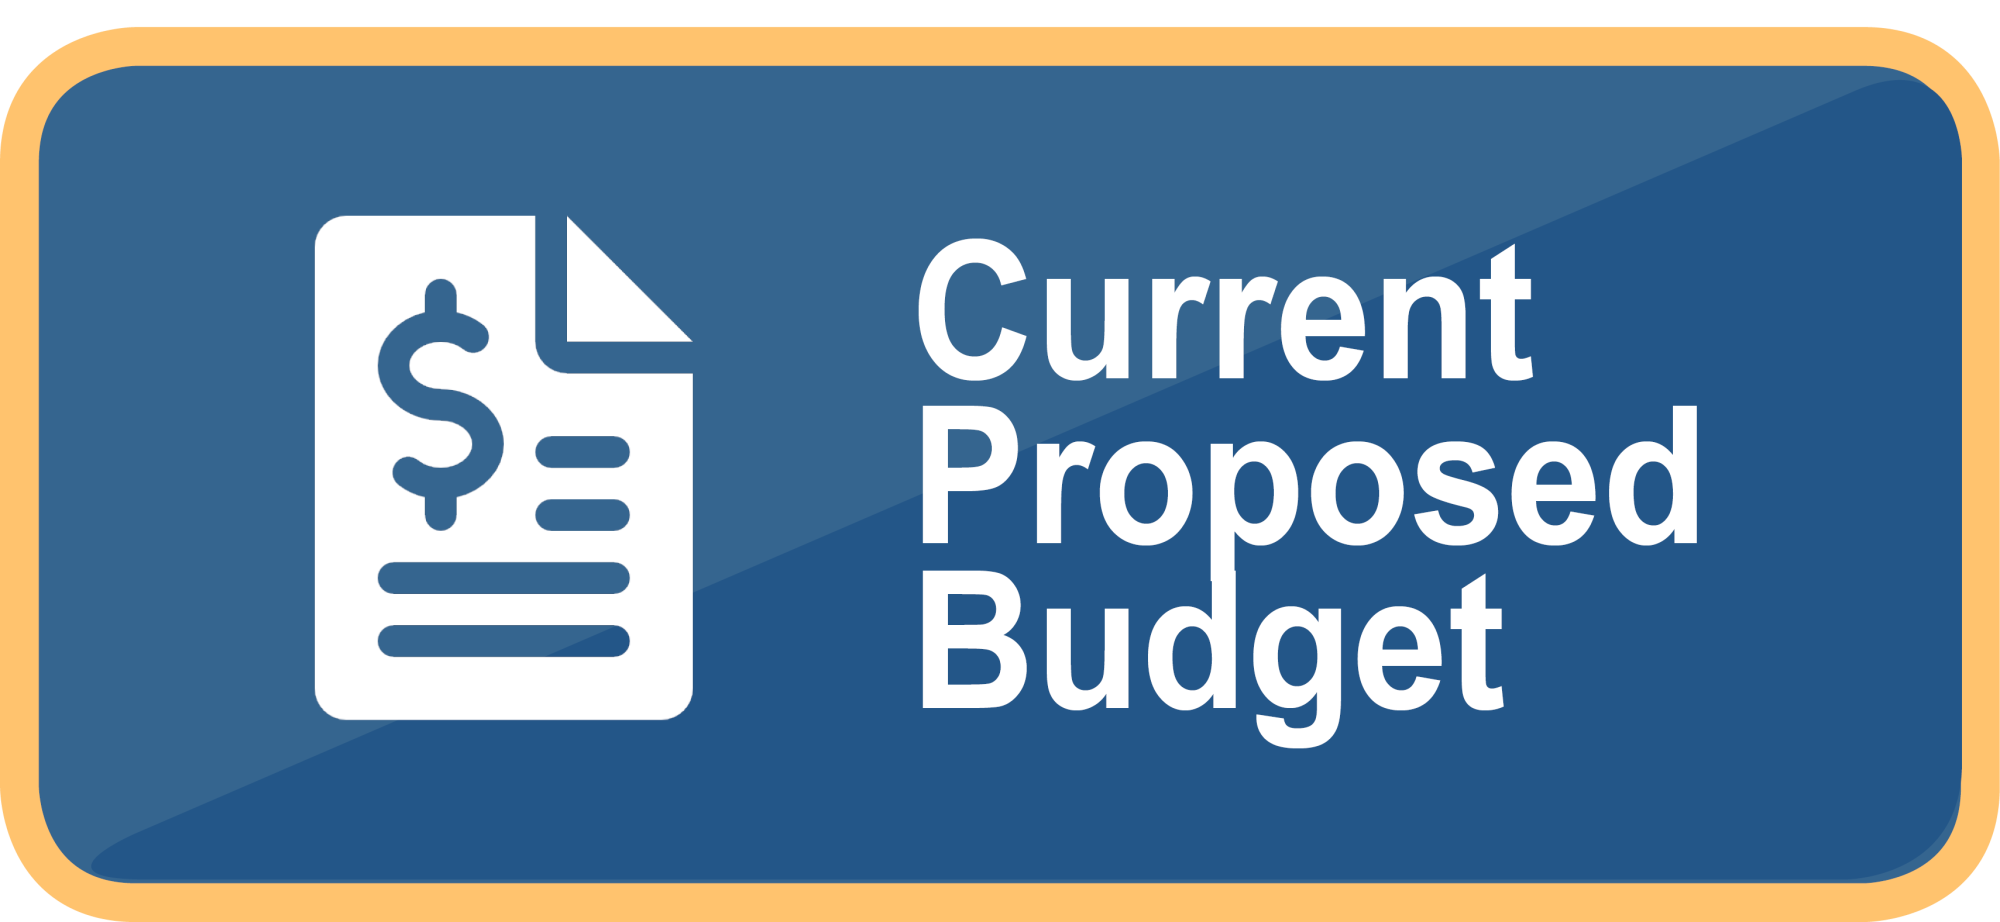 Current Proposed Budget